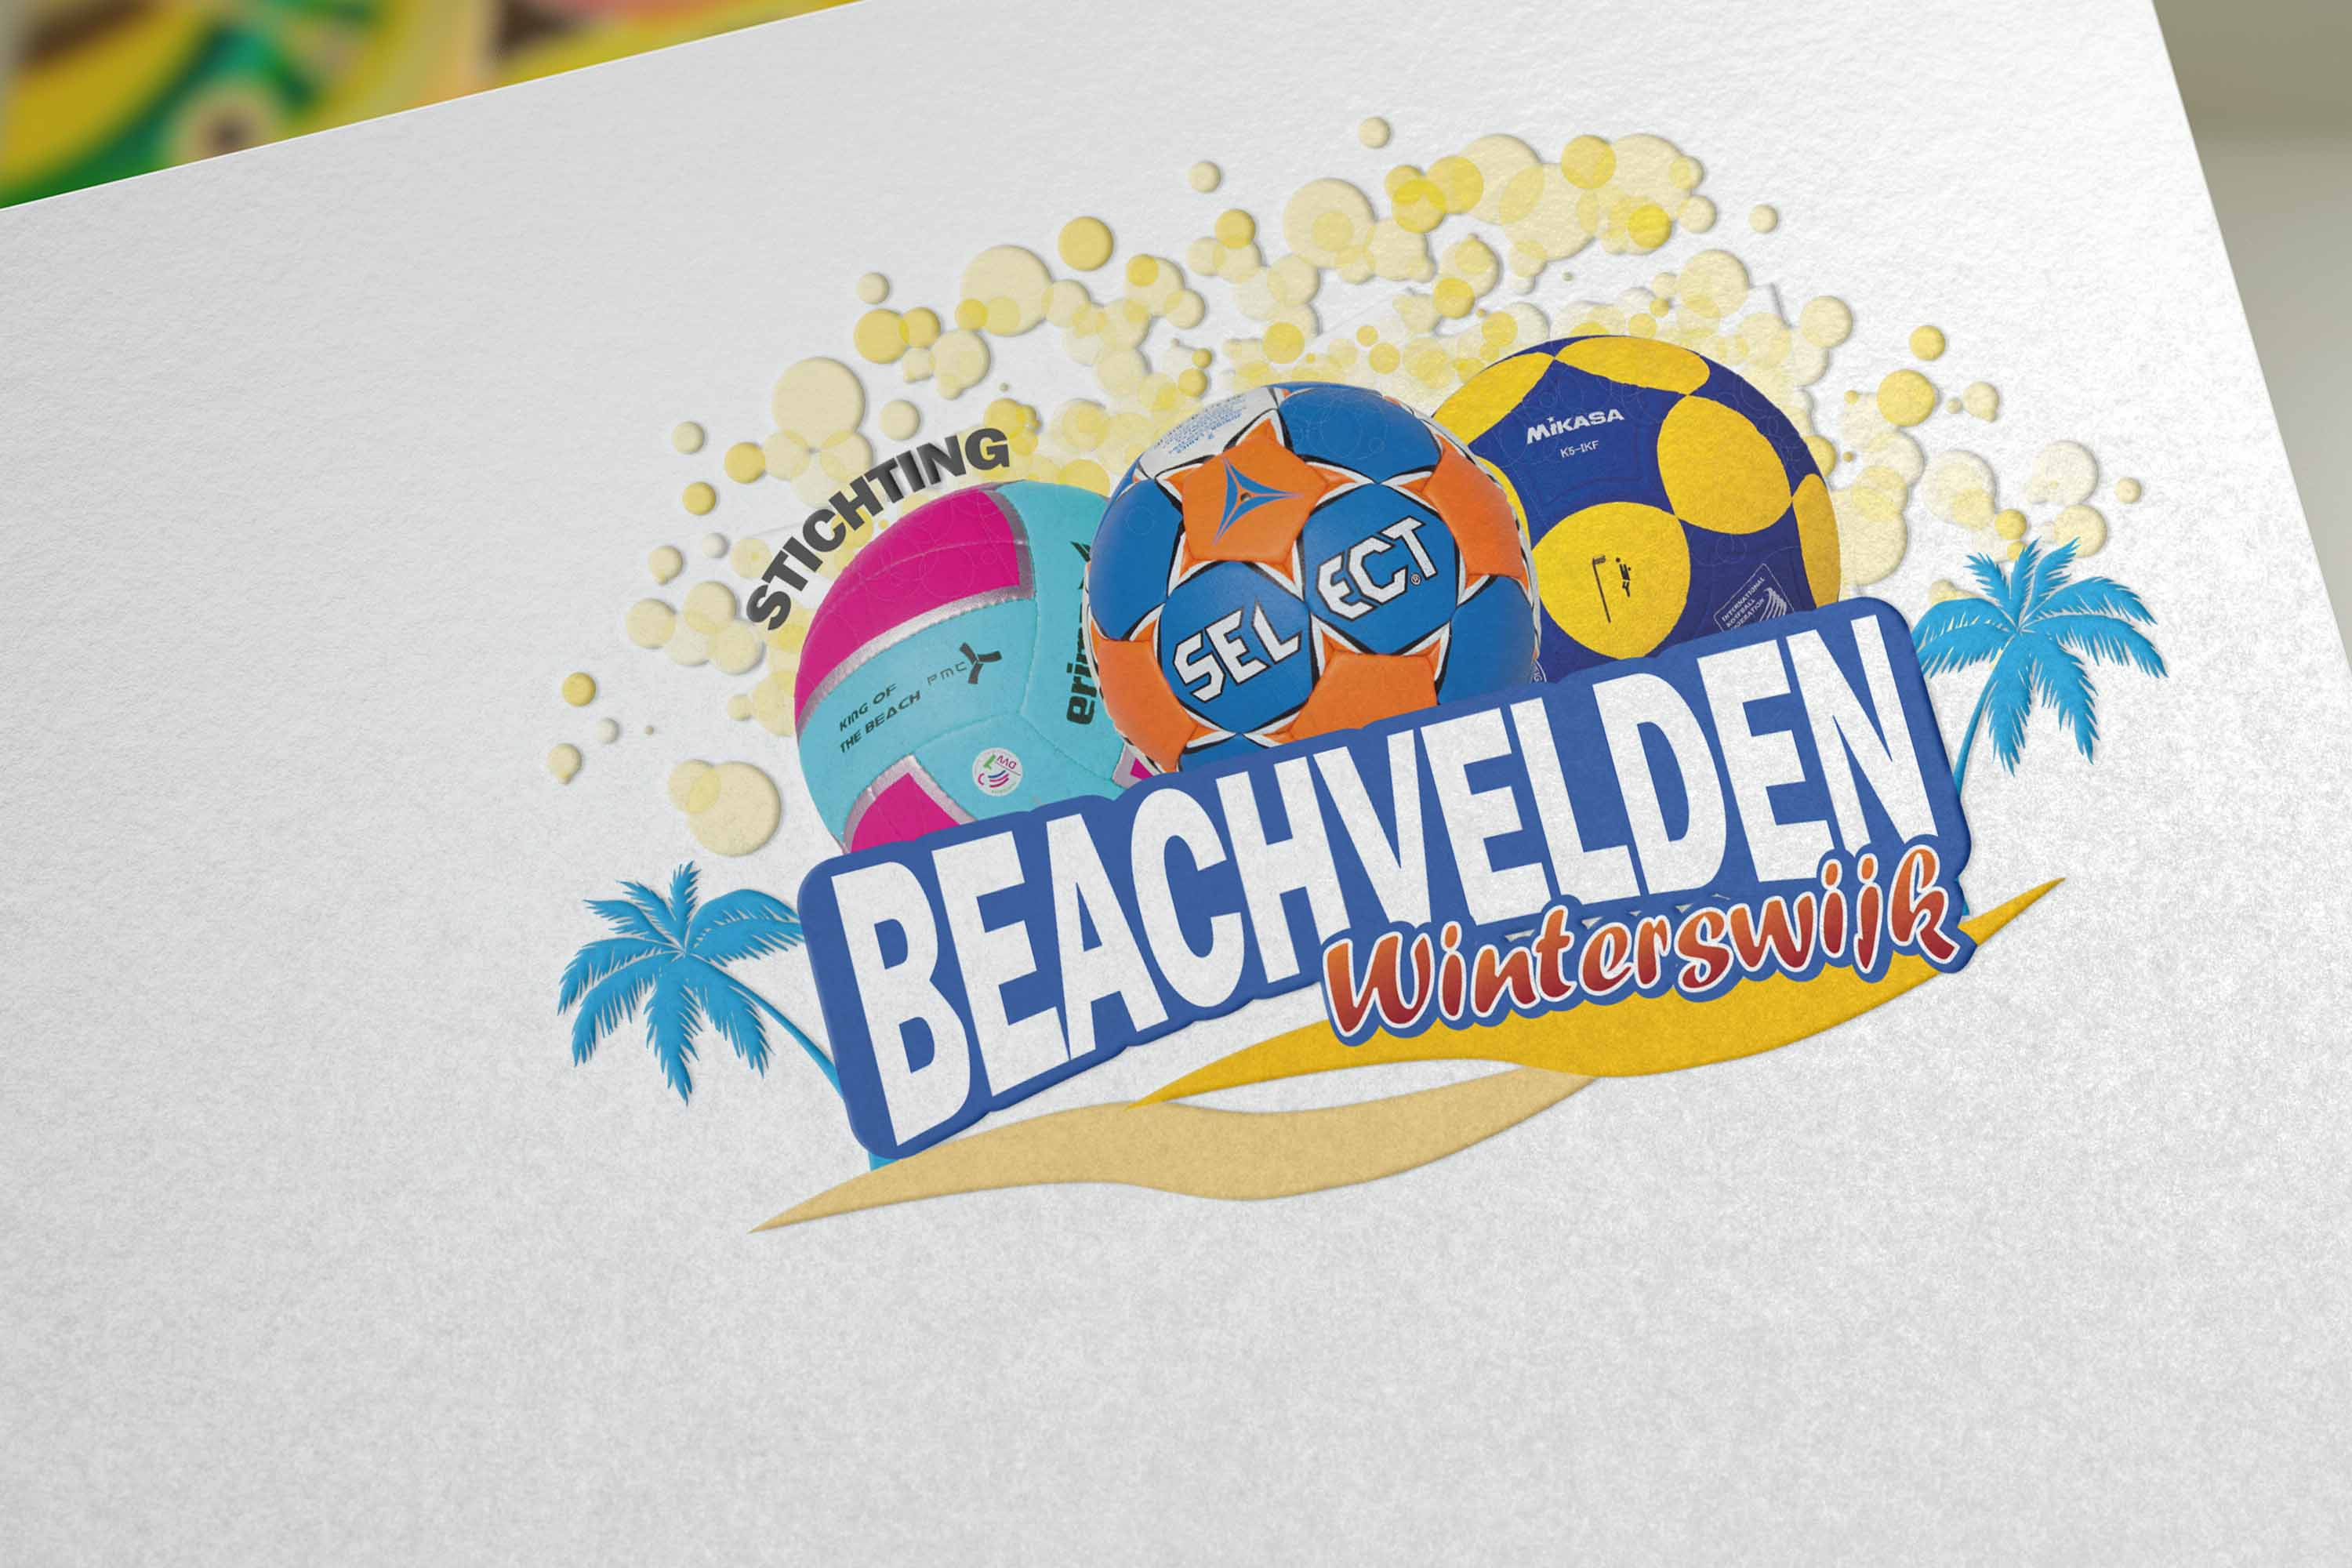 Logo Beachvelden Winterswijk